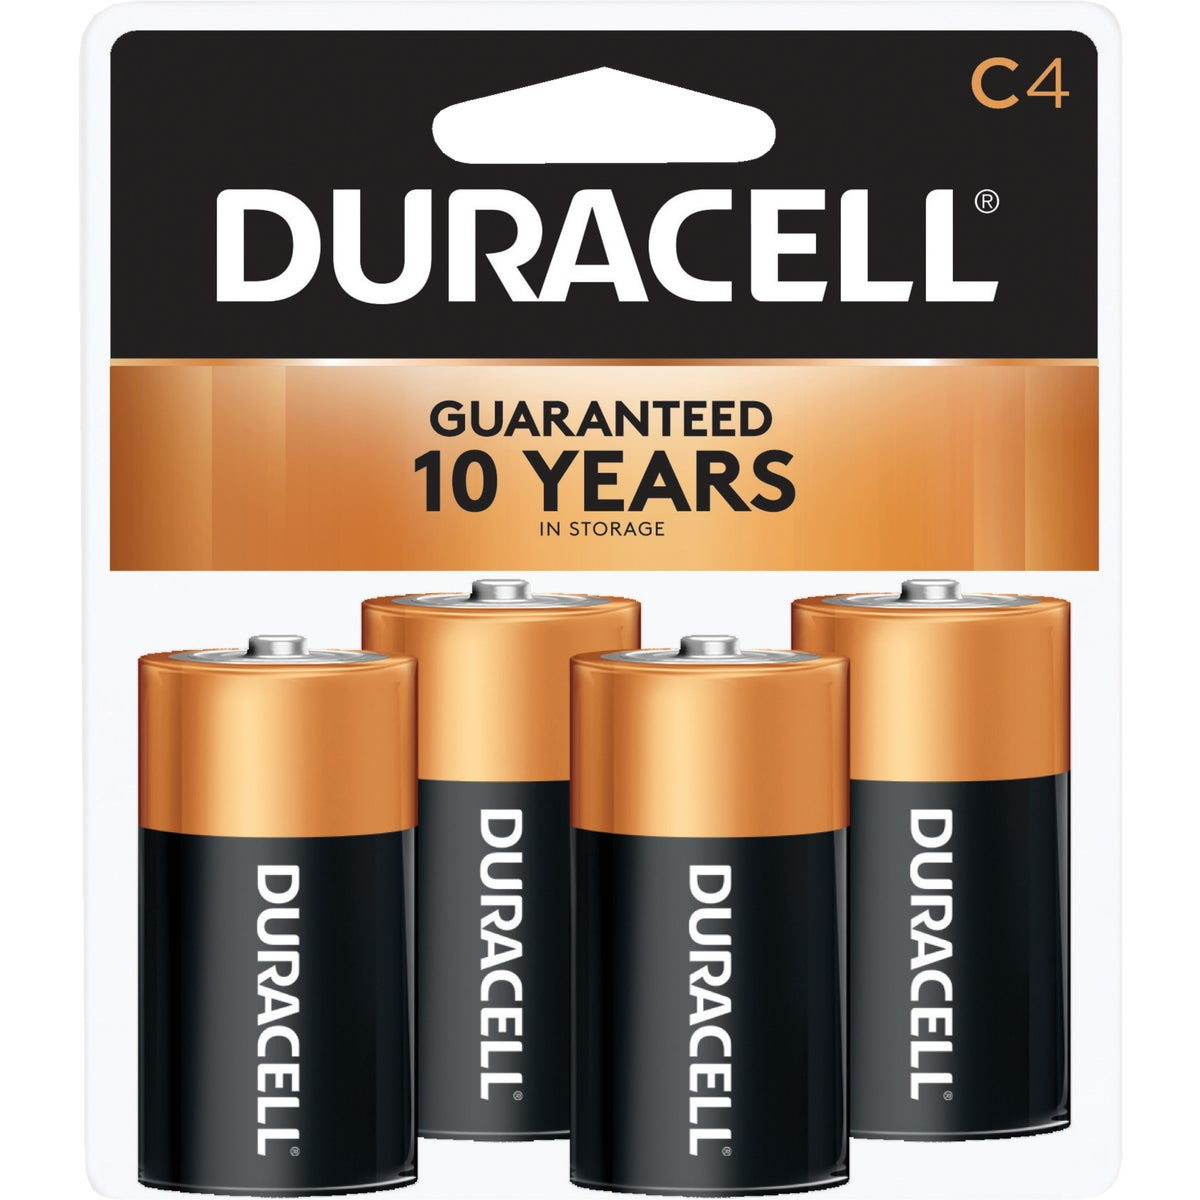 4PK C ALKALINE BATTERY - 13848 by P & G  Duracell